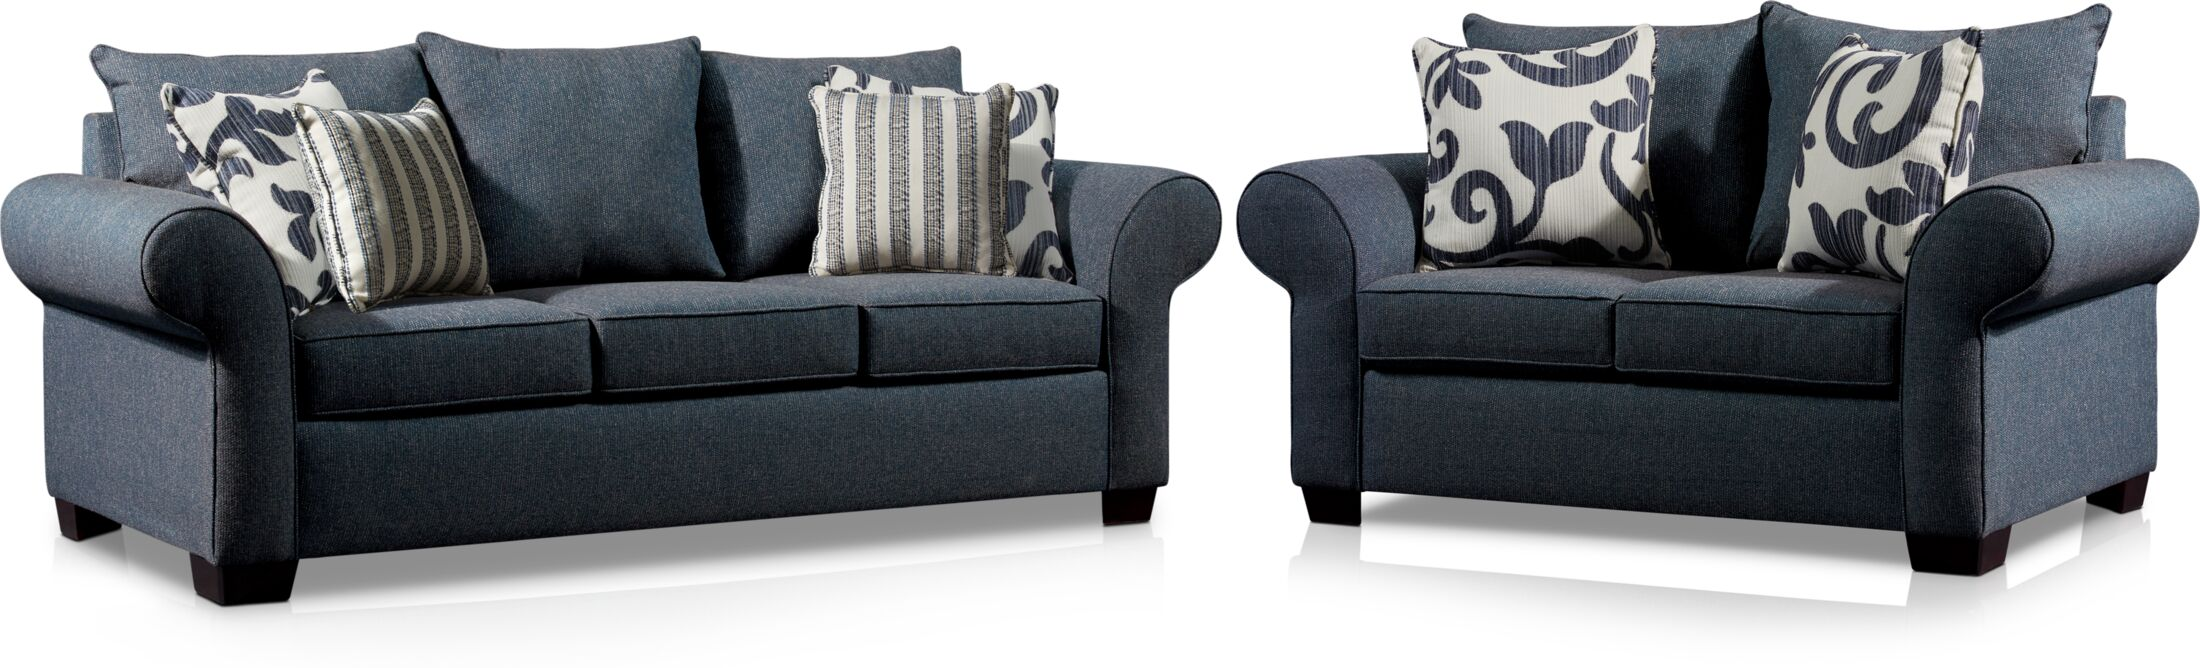 Living Room Furniture - Calloway Sofa and Loveseat Set - Blue